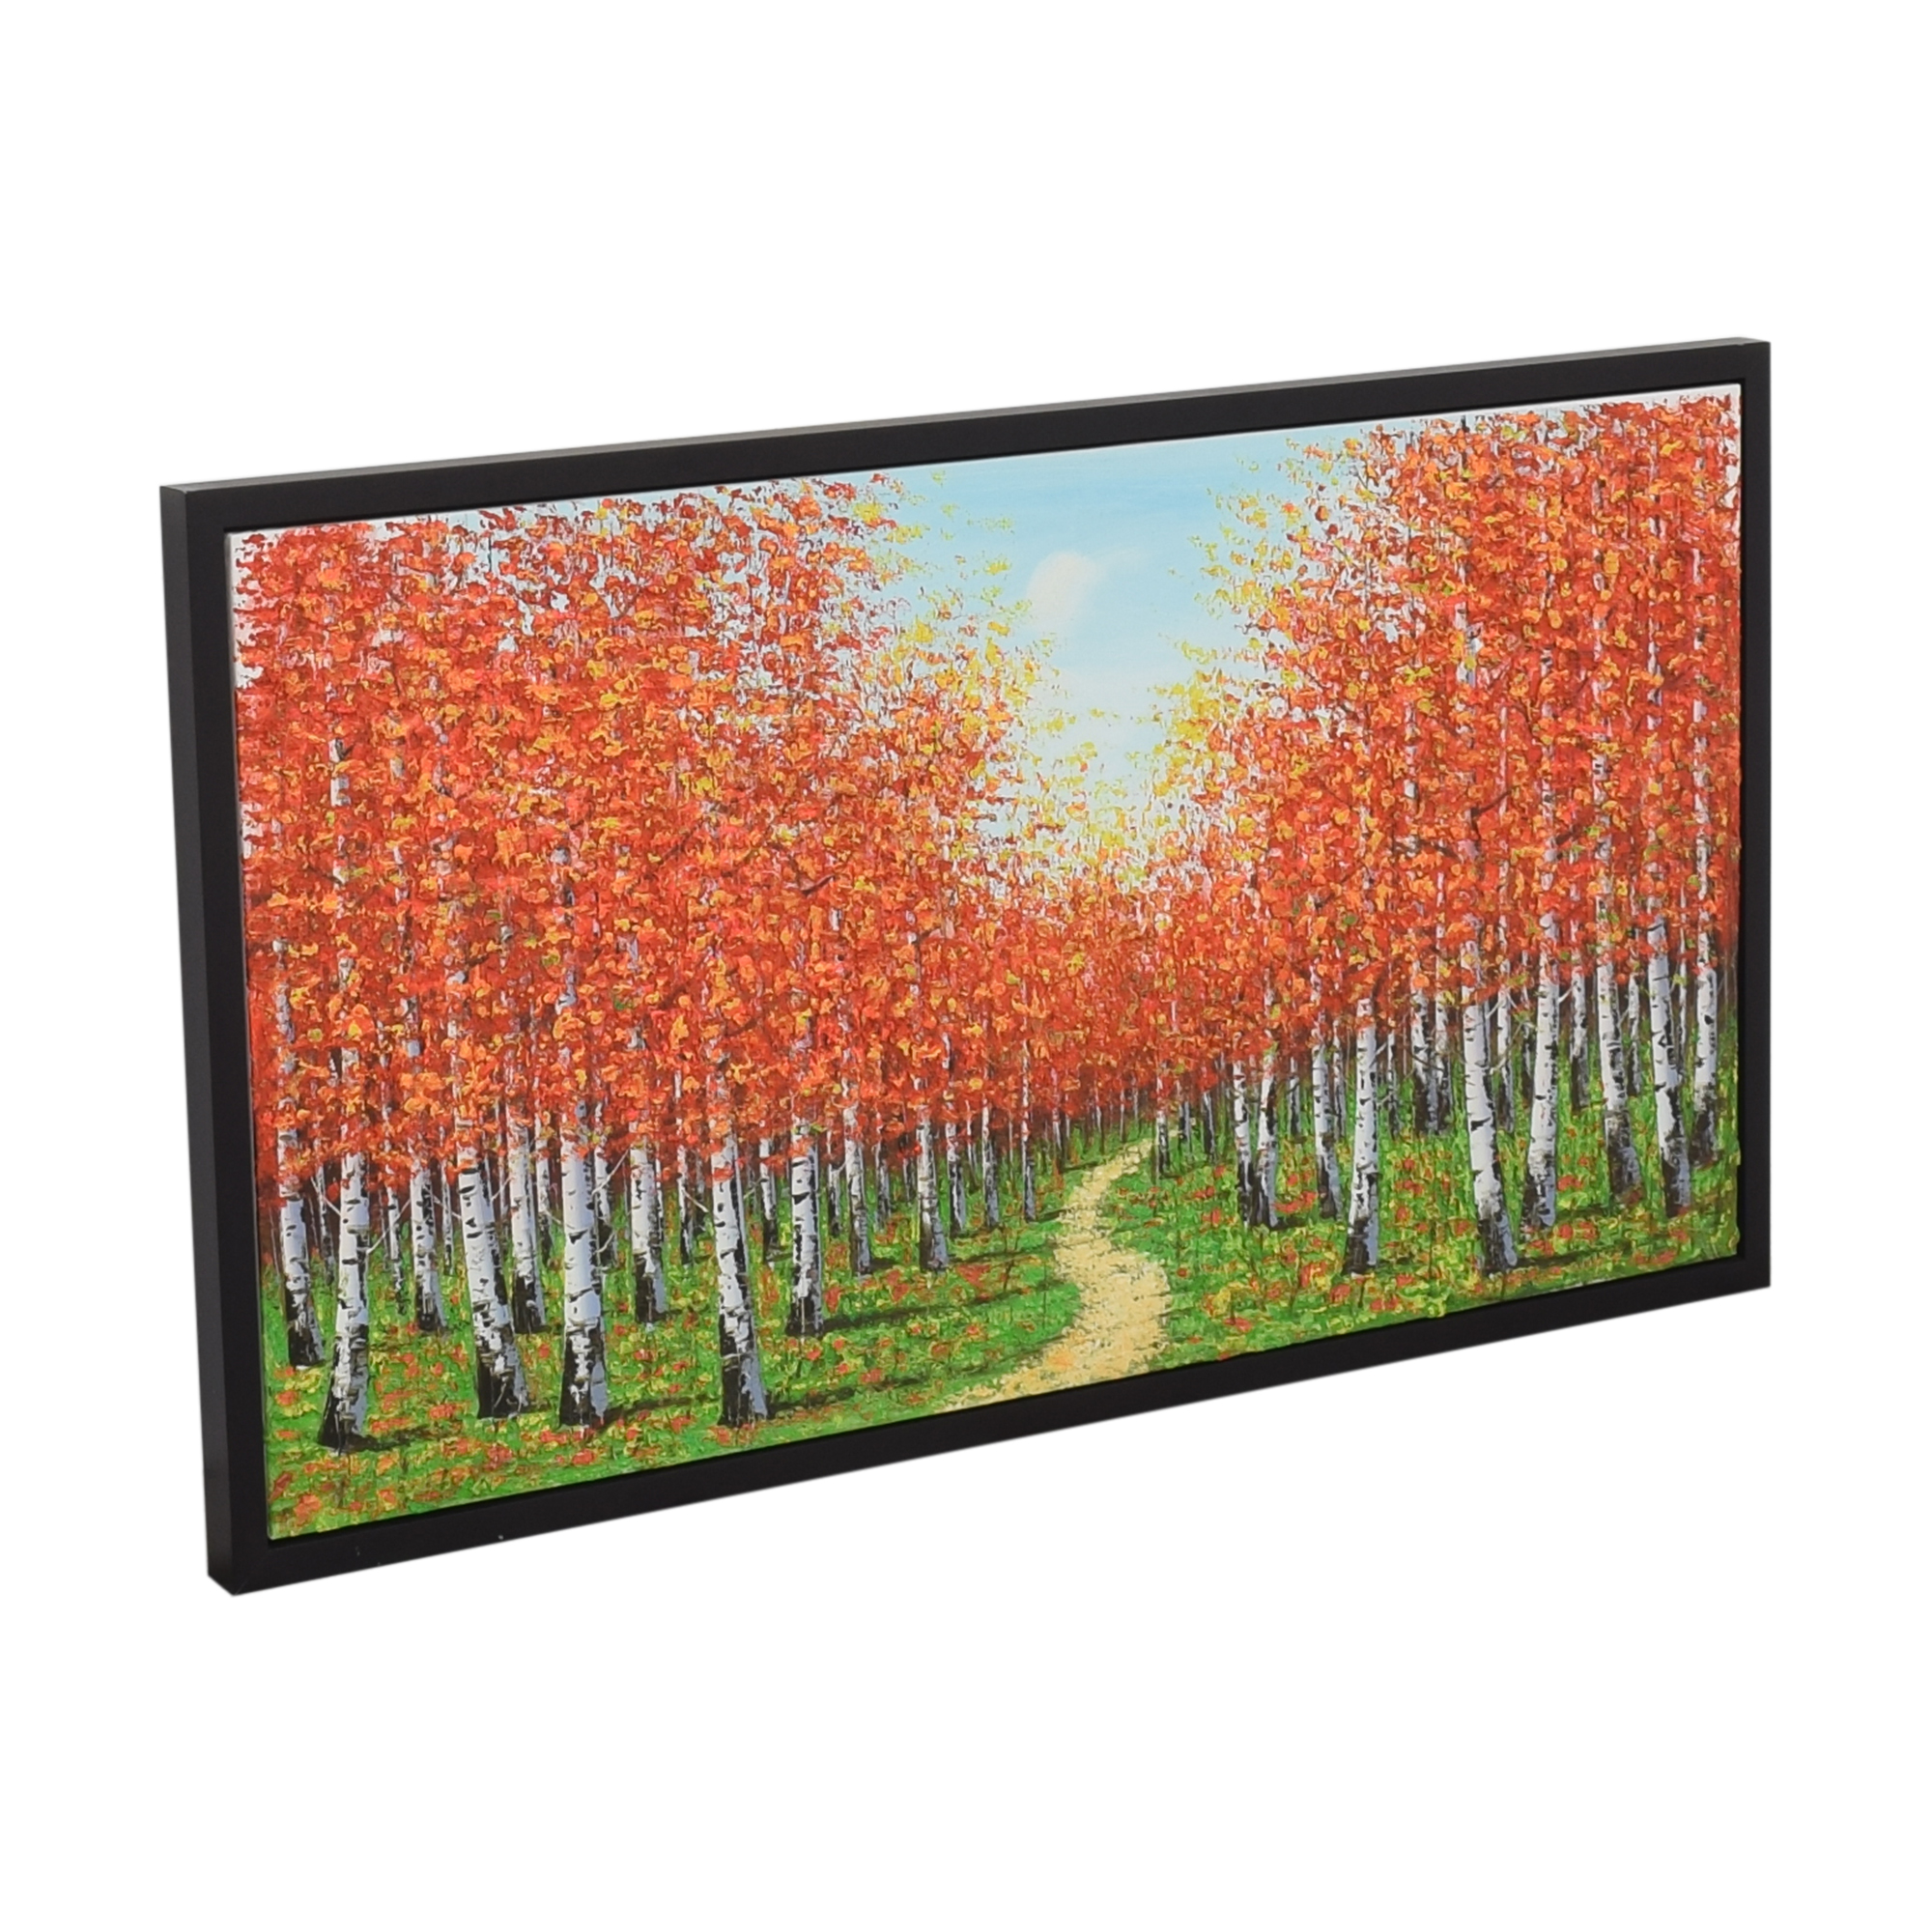 Framed Landscape Painting Wall Art pa